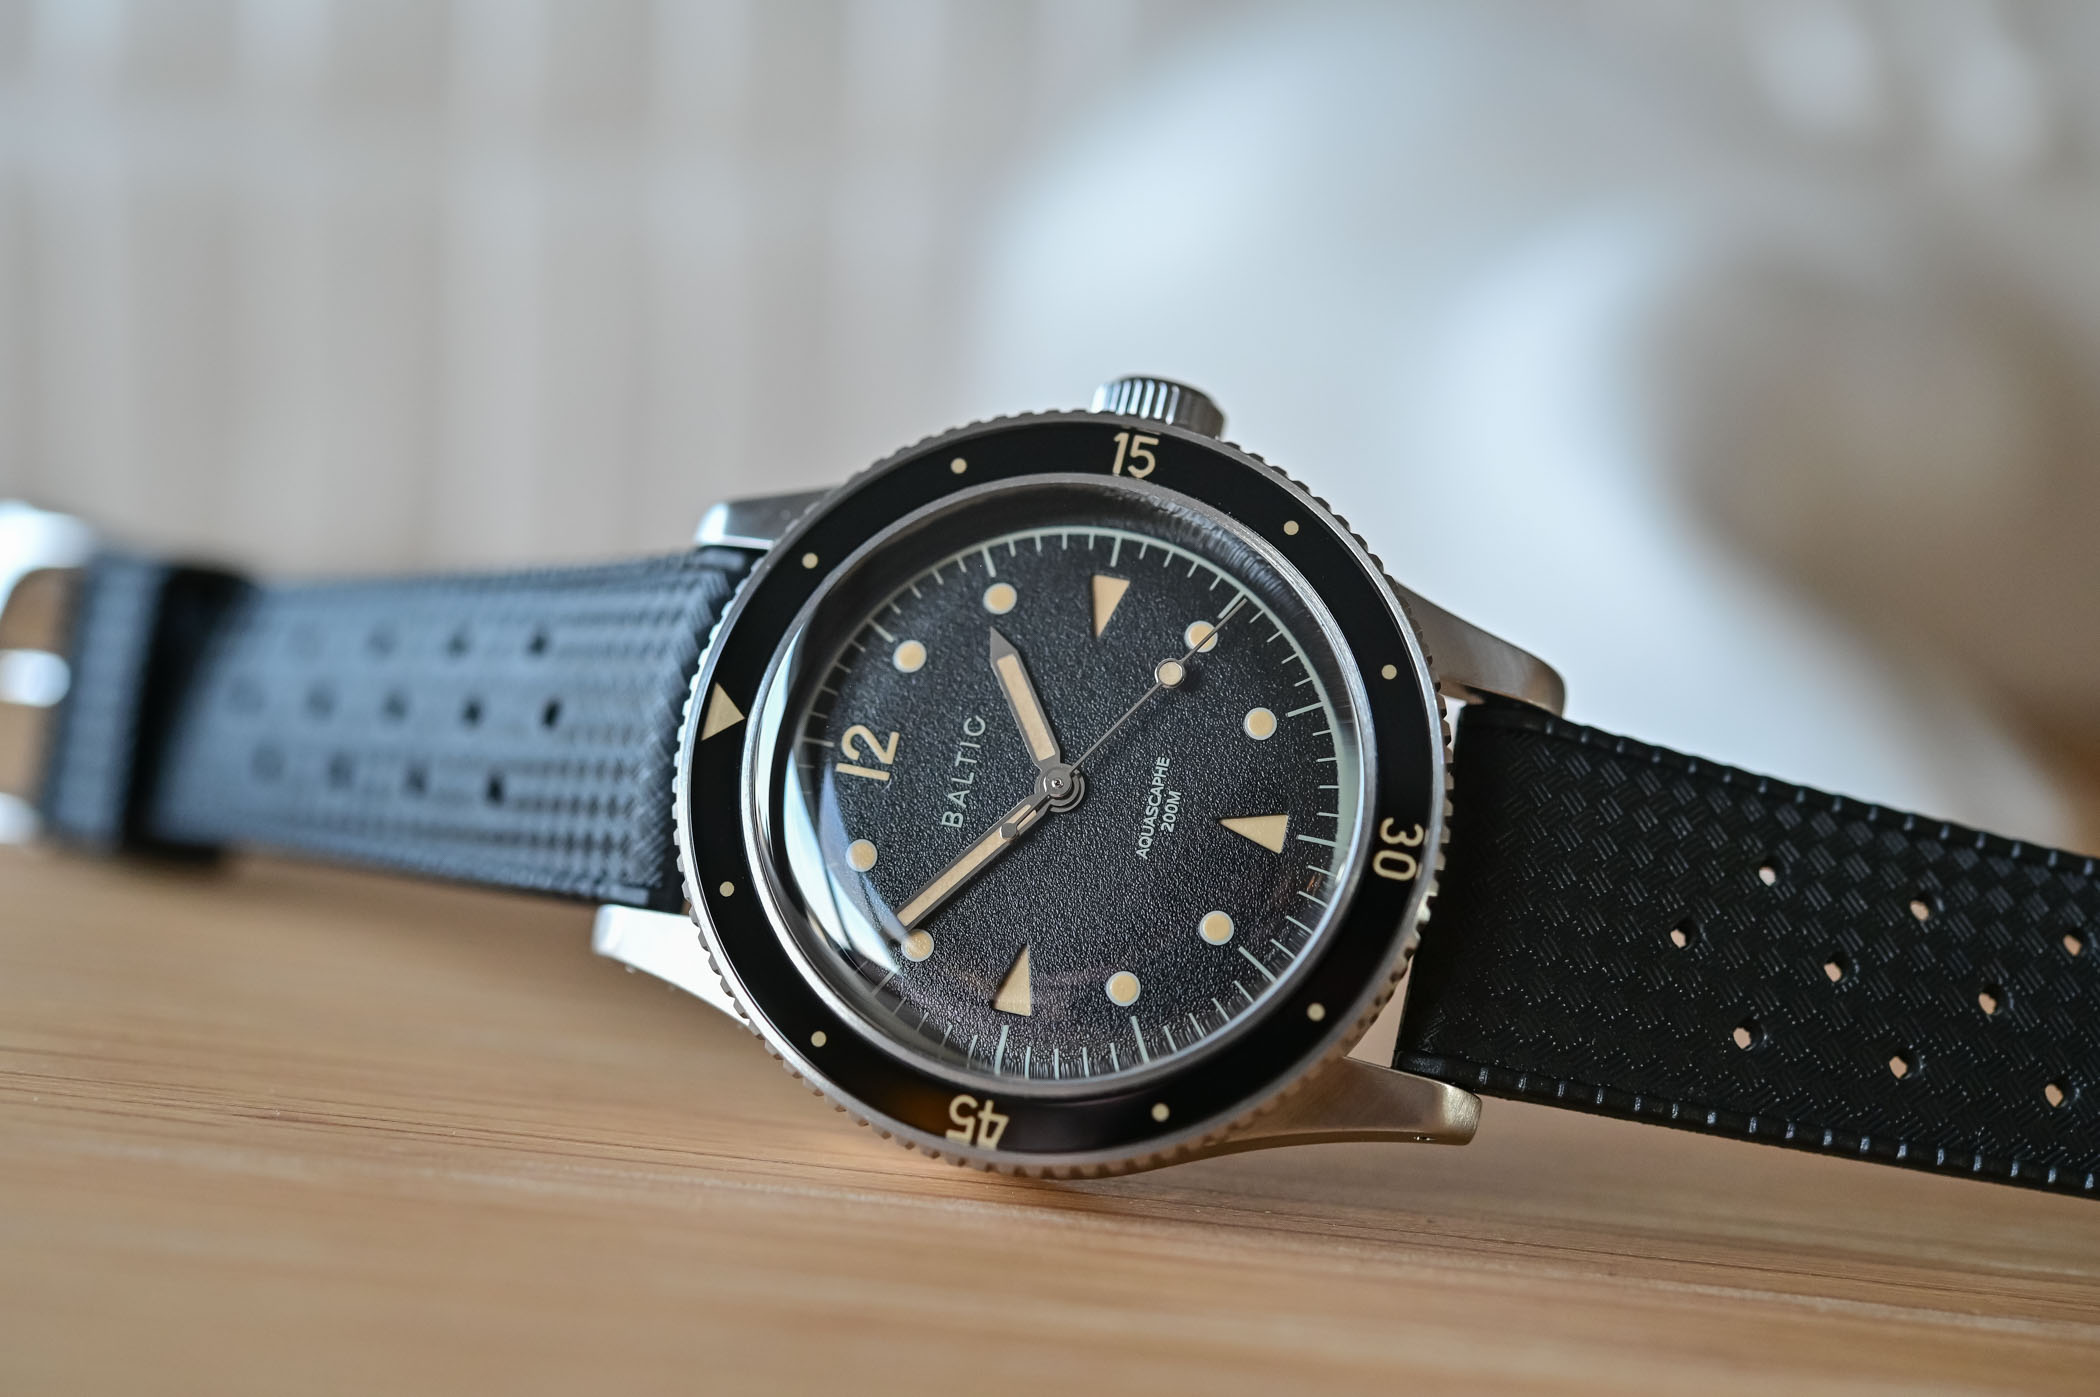 Baltic Aquascaphe Dive Watch - Review